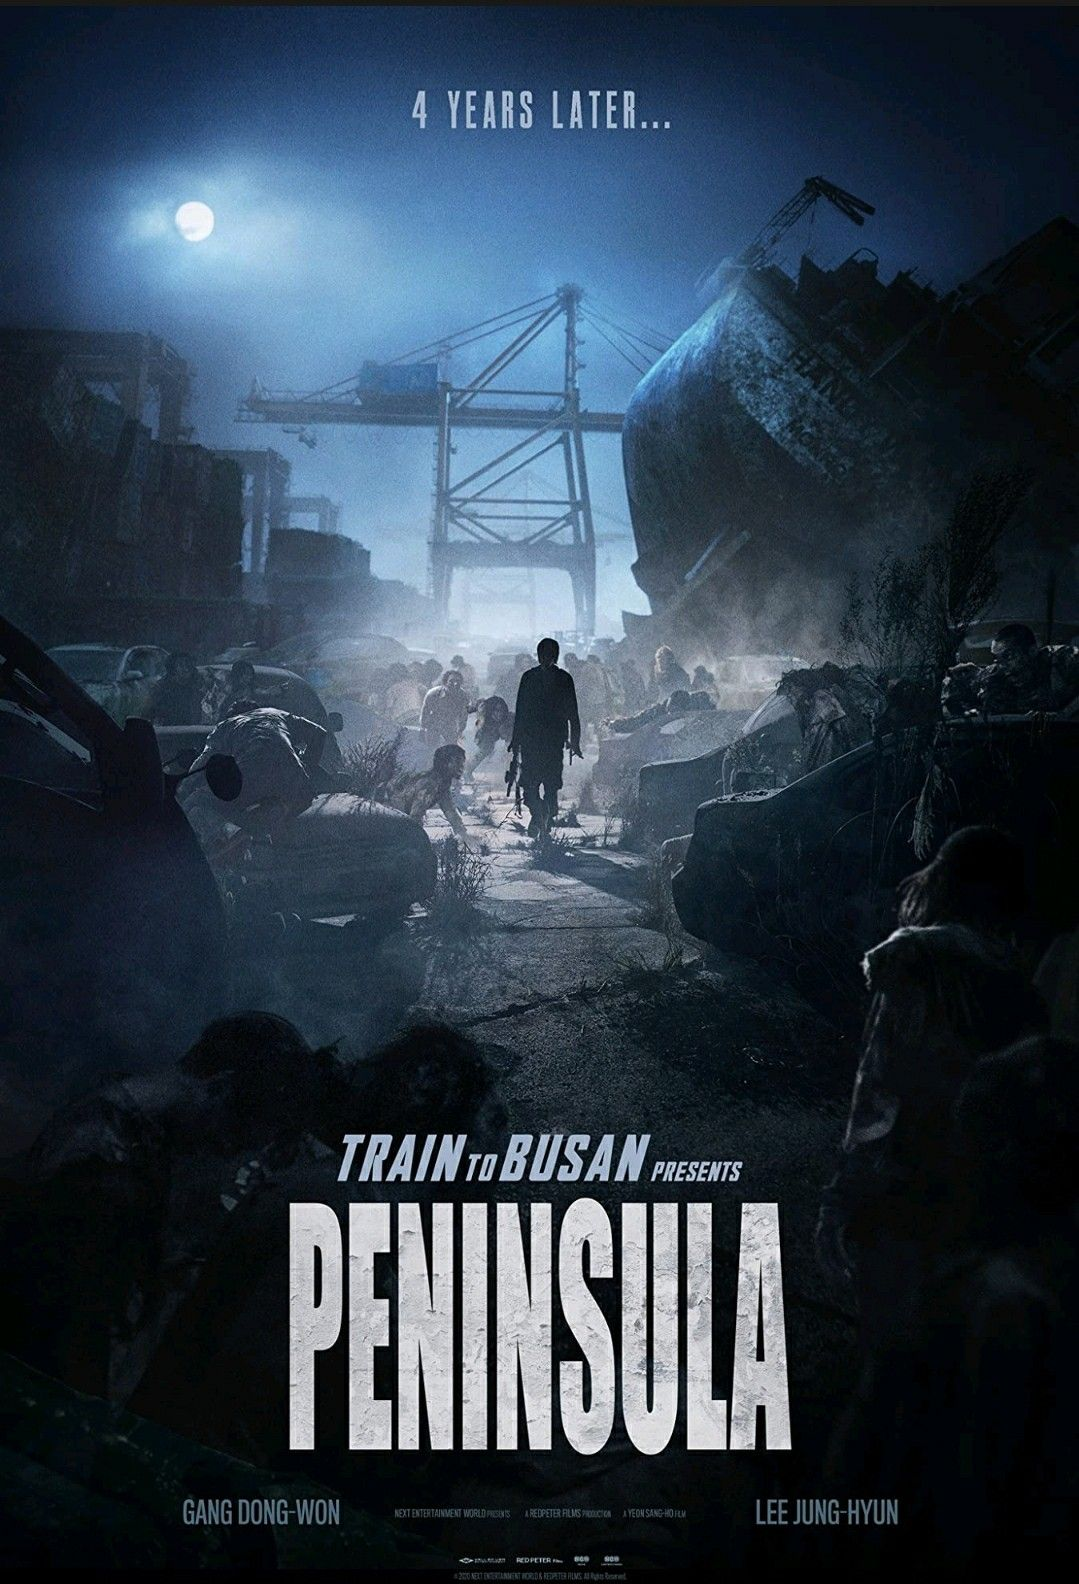 Train To Busan 2 Peninsula 2020 Movie Review In Tamil Busan Movies Online Full Movies